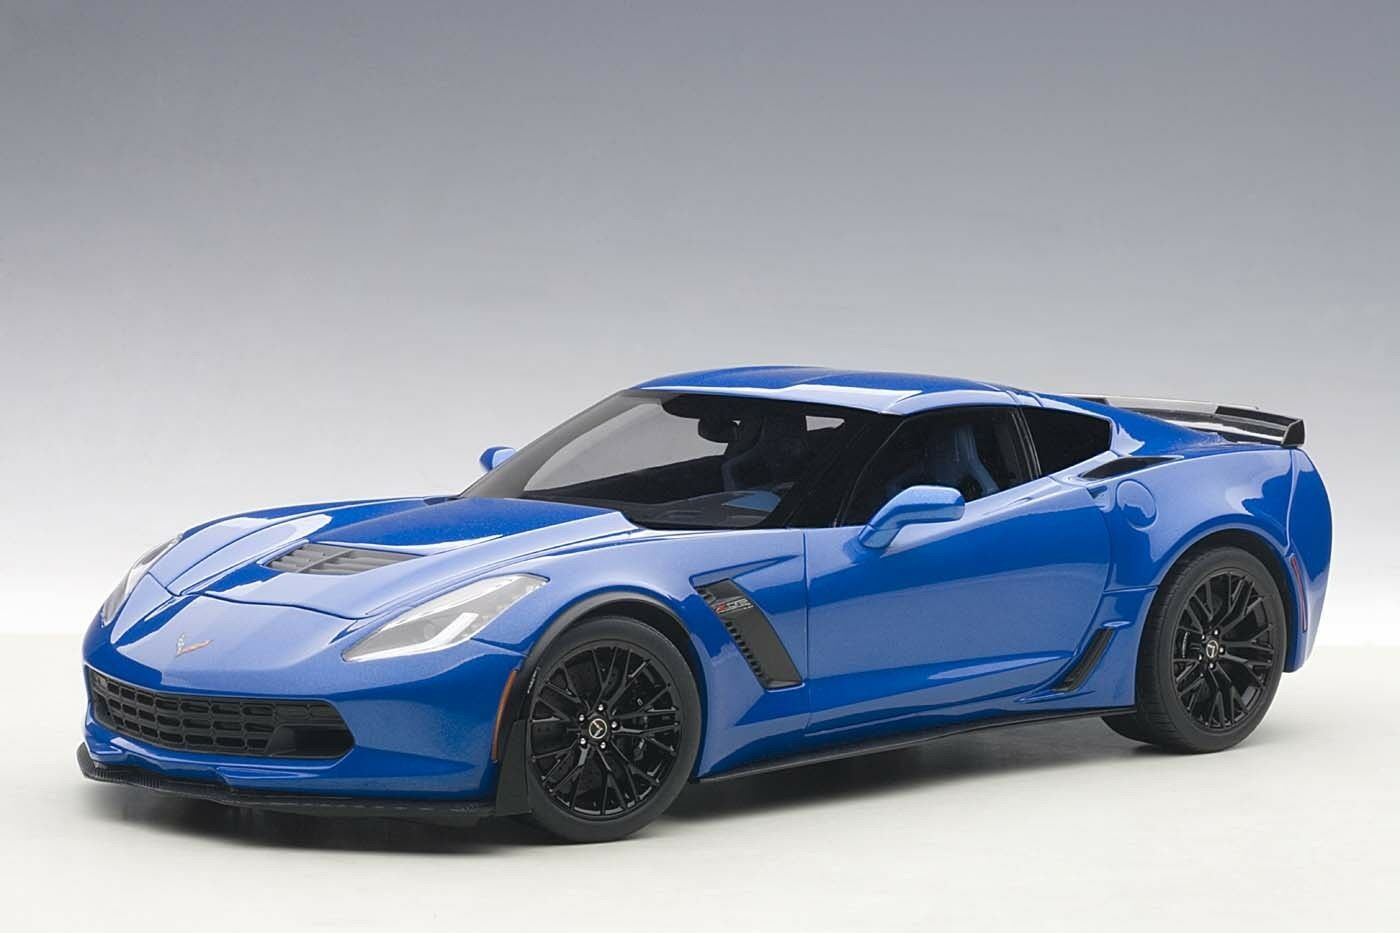 2016 CHEVROLET CORVETTE C7 Z06 COUPE LAGUNA blueE 1 18 AUTOart 71265 NEW IN BOX